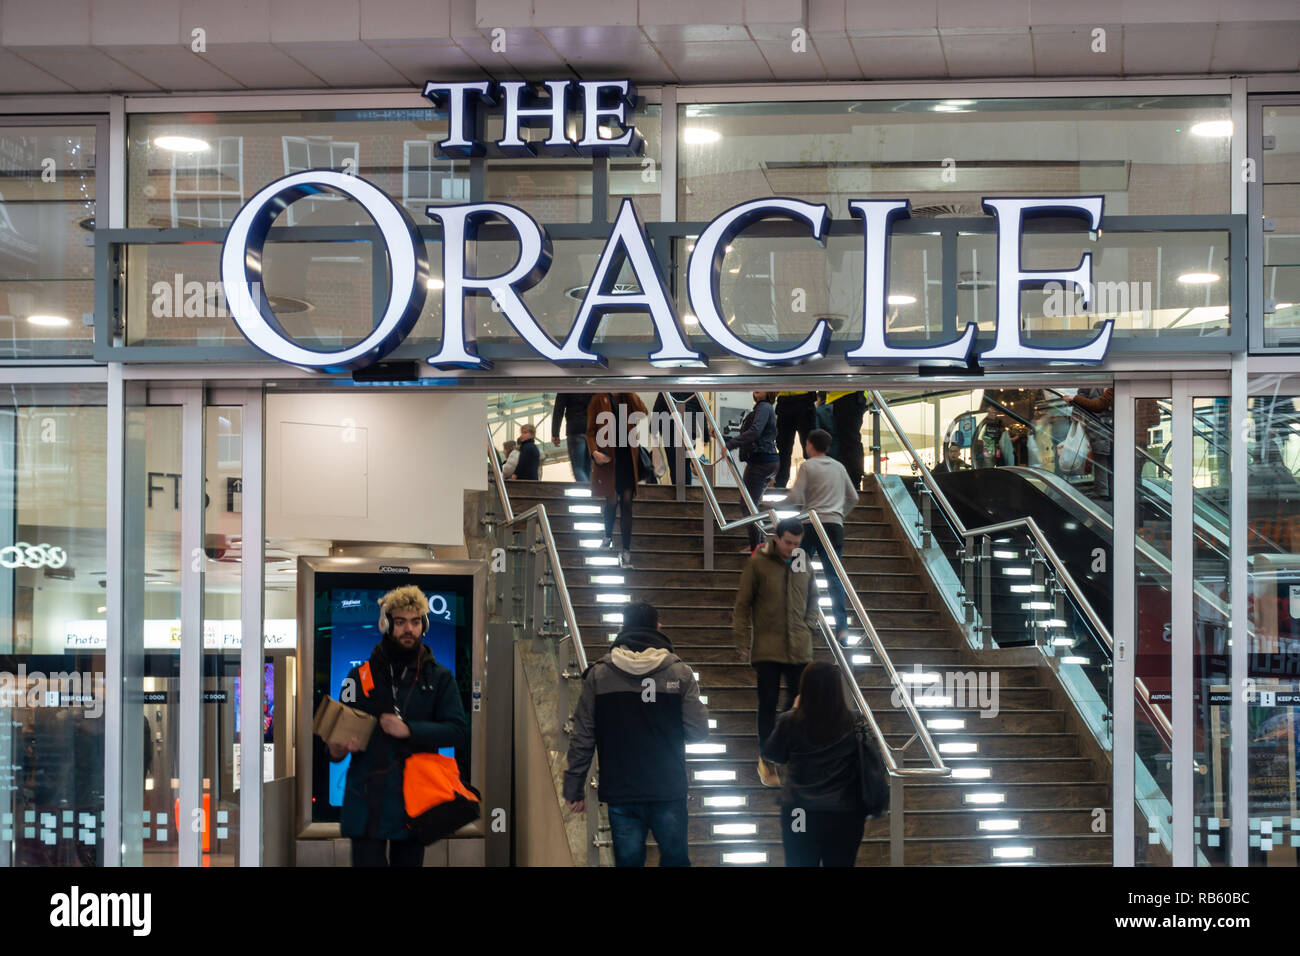 An entrance off Broad Street  into The Oracle Shopping Centre in Reading, Berkshire, UK Stock Photo